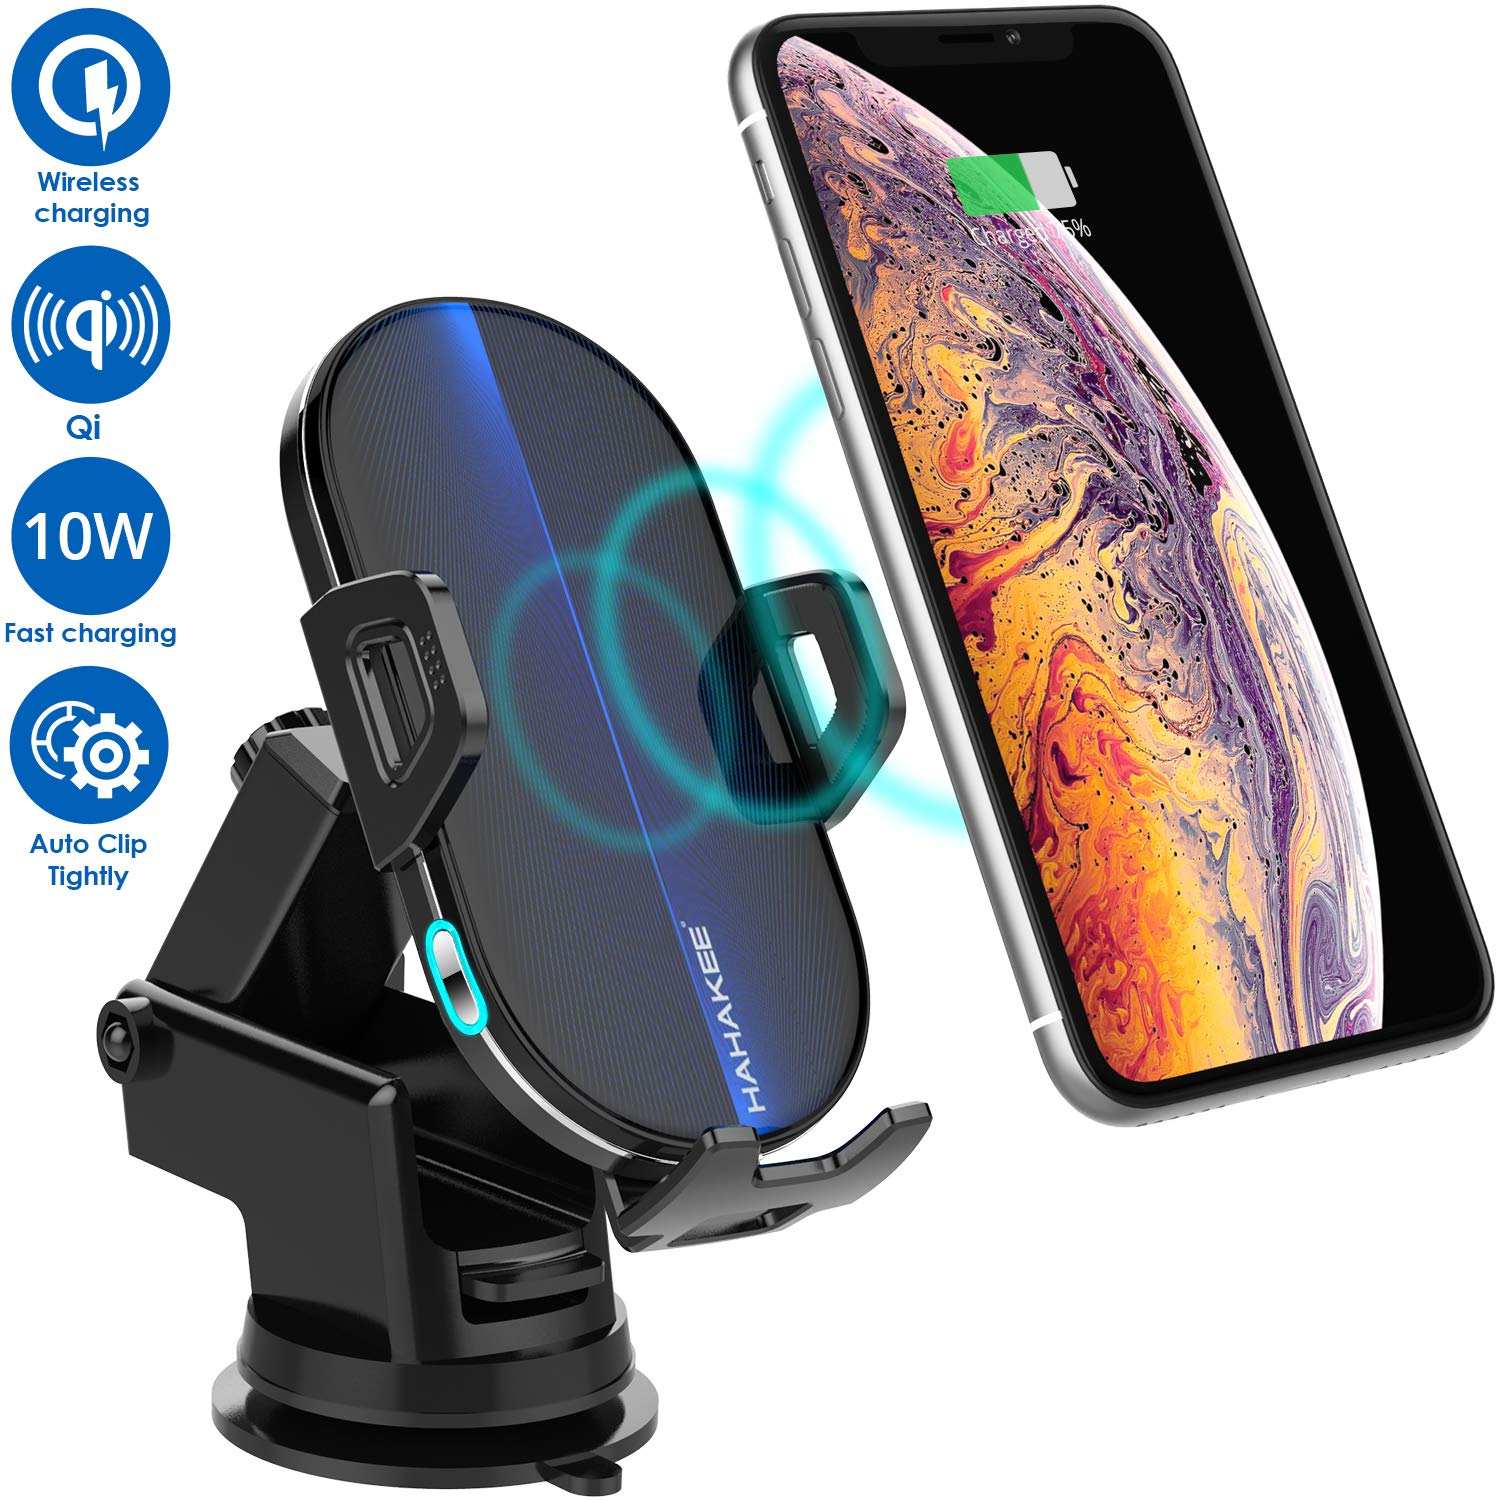 Wireless Car Charger Mount Sensor Auto Clamping 10W 7.5W Fast Charging Air Vent Phone Holder Compatible with iPhone 11 Pro Max//Xs//Xs Max//XR//X//8//8 Plus Samsung S10//S10+//S9//S9+//S8 /& All Qi Device T3